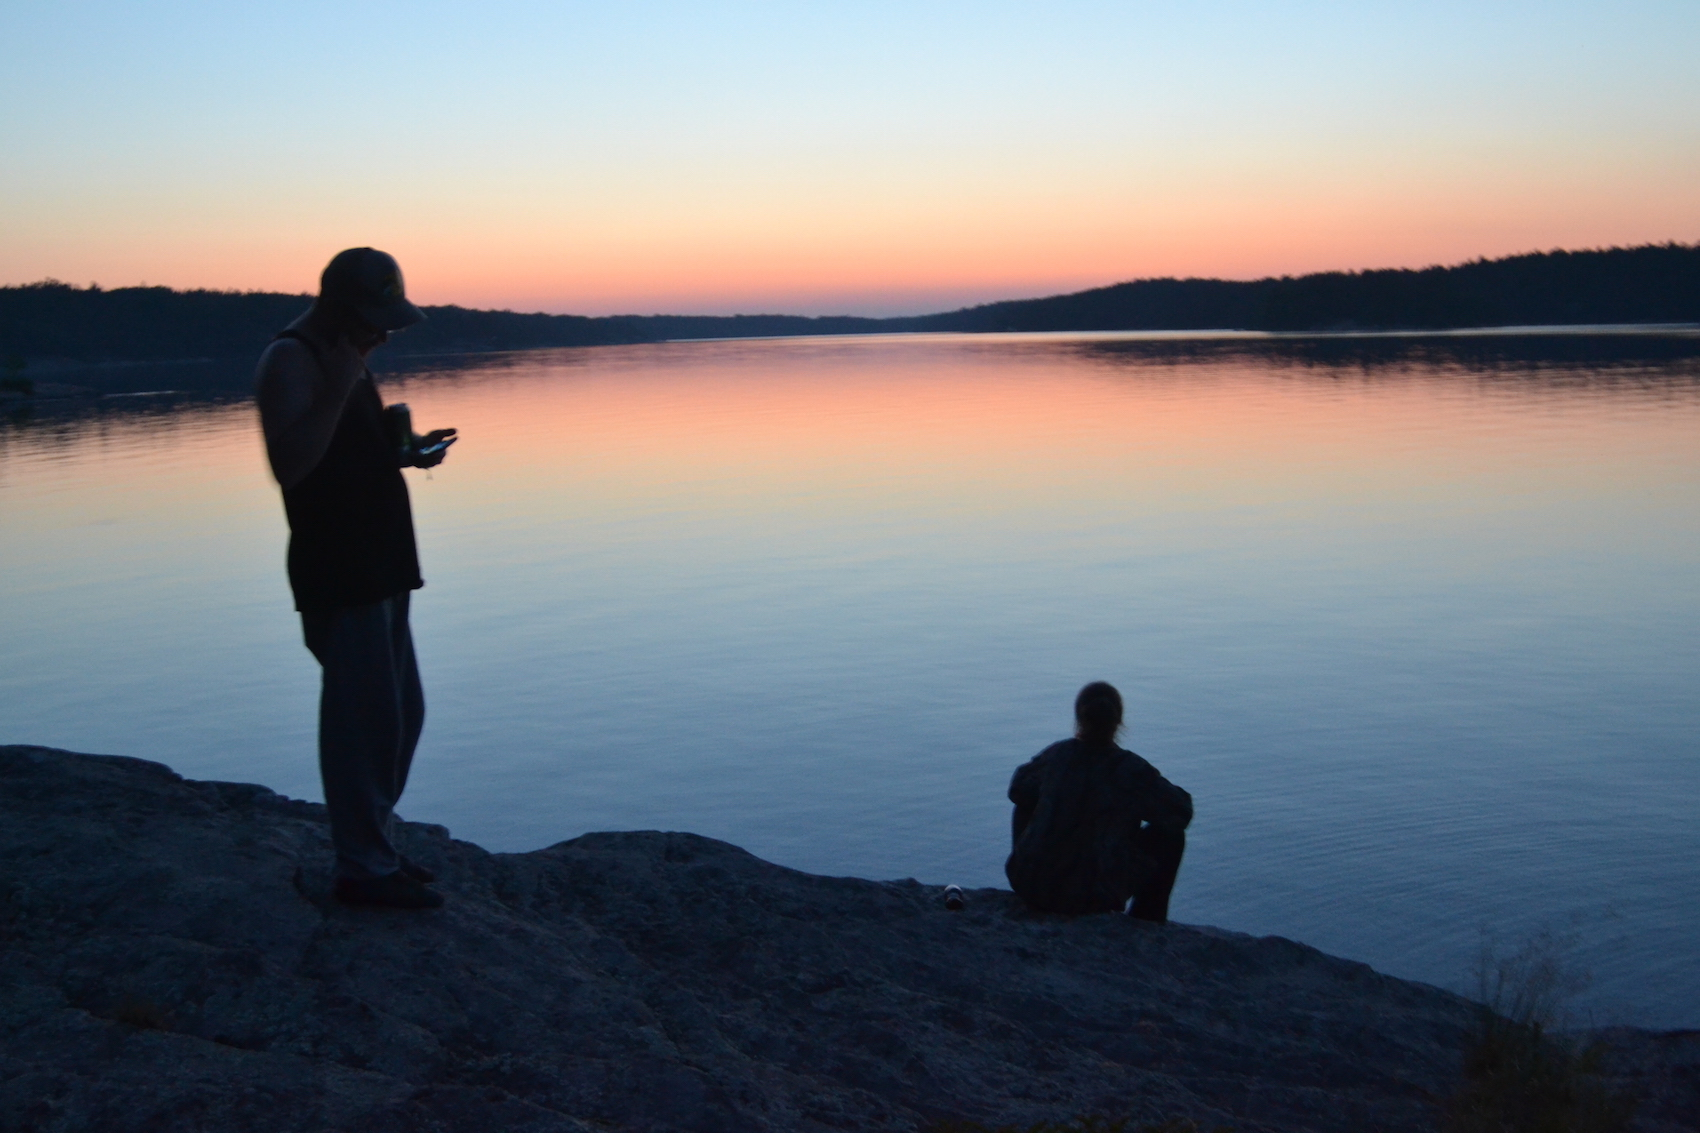 Silhouettes stand dubiously against a lake during sunset